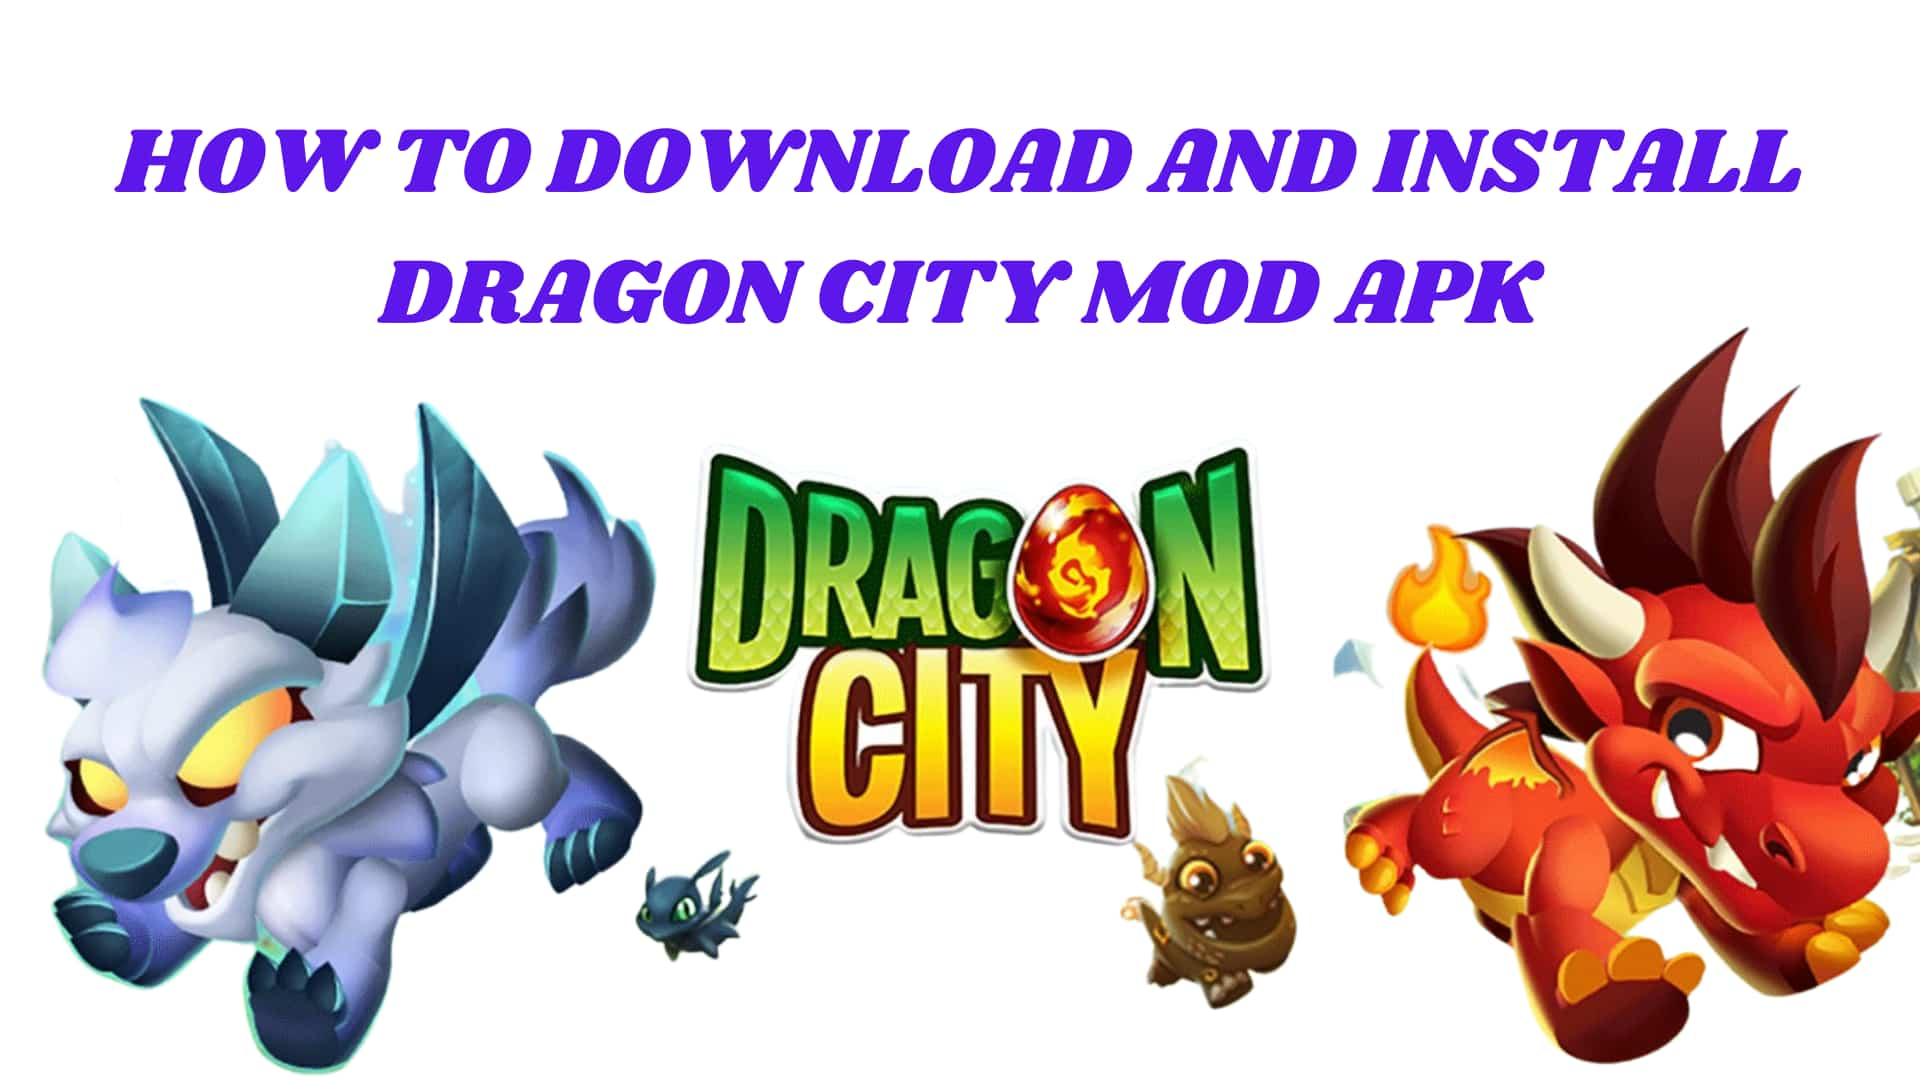 How to Download and install Dragon City Mod Apk